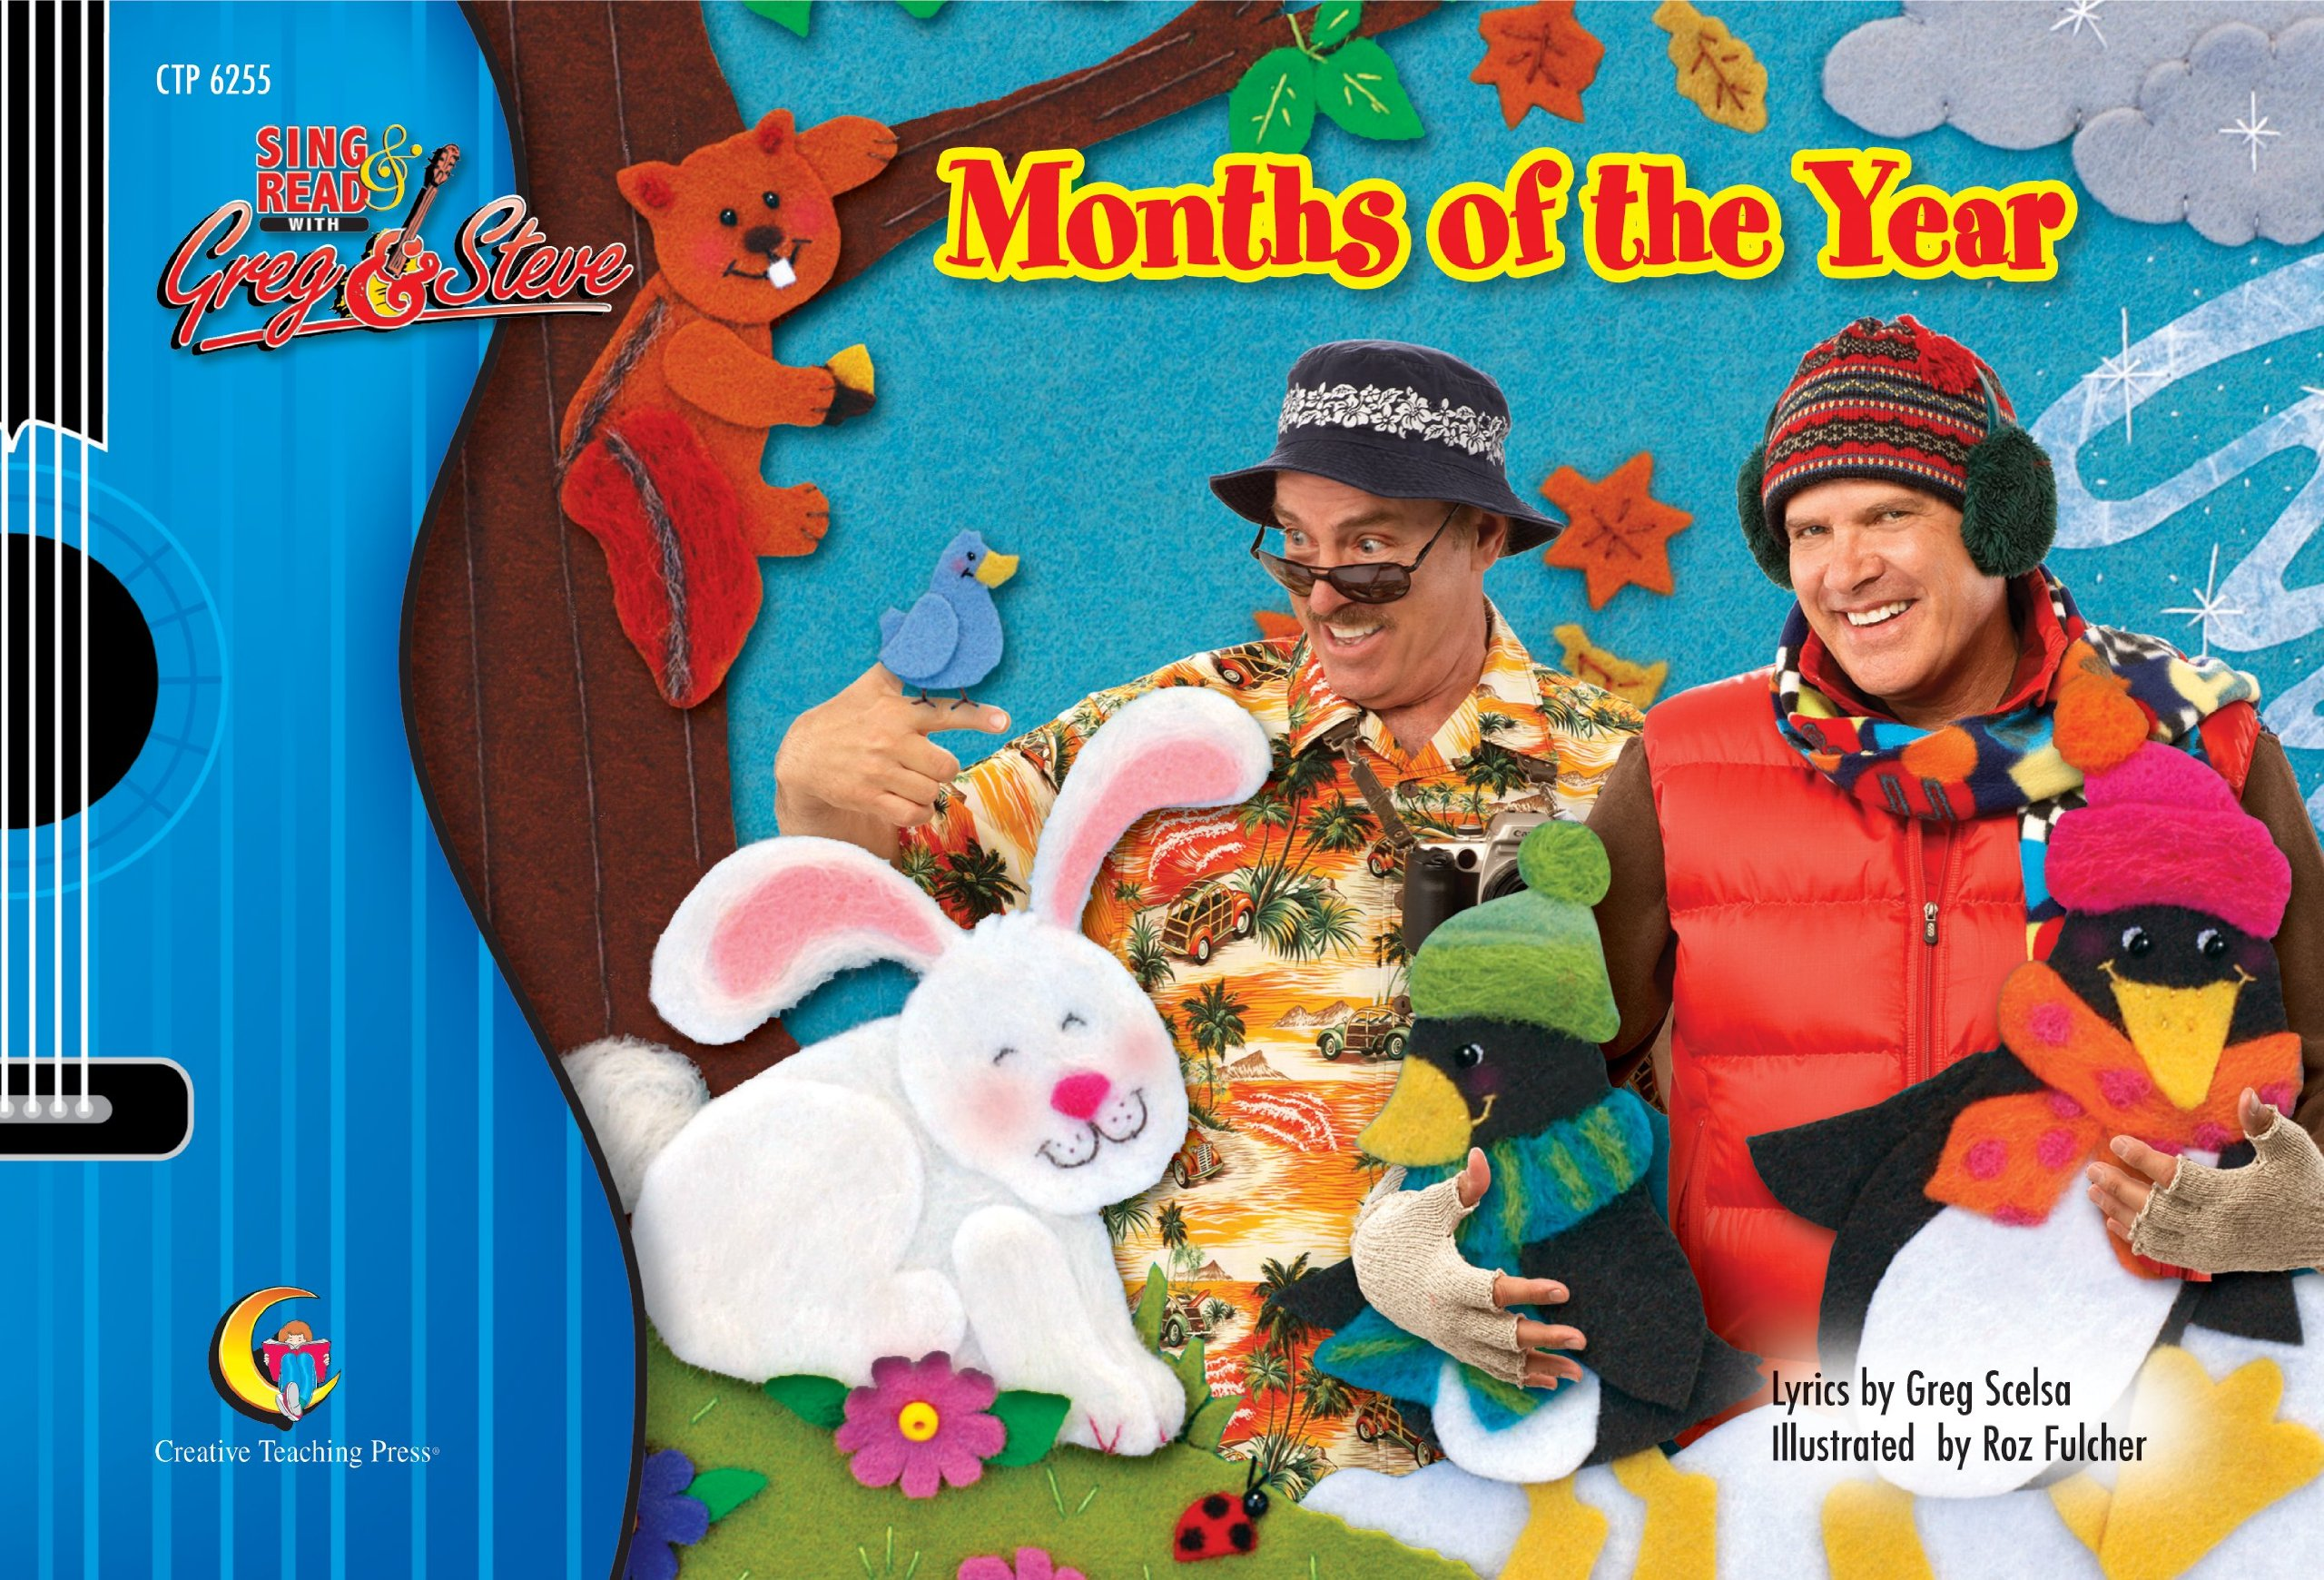 12 months of the year song lyrics